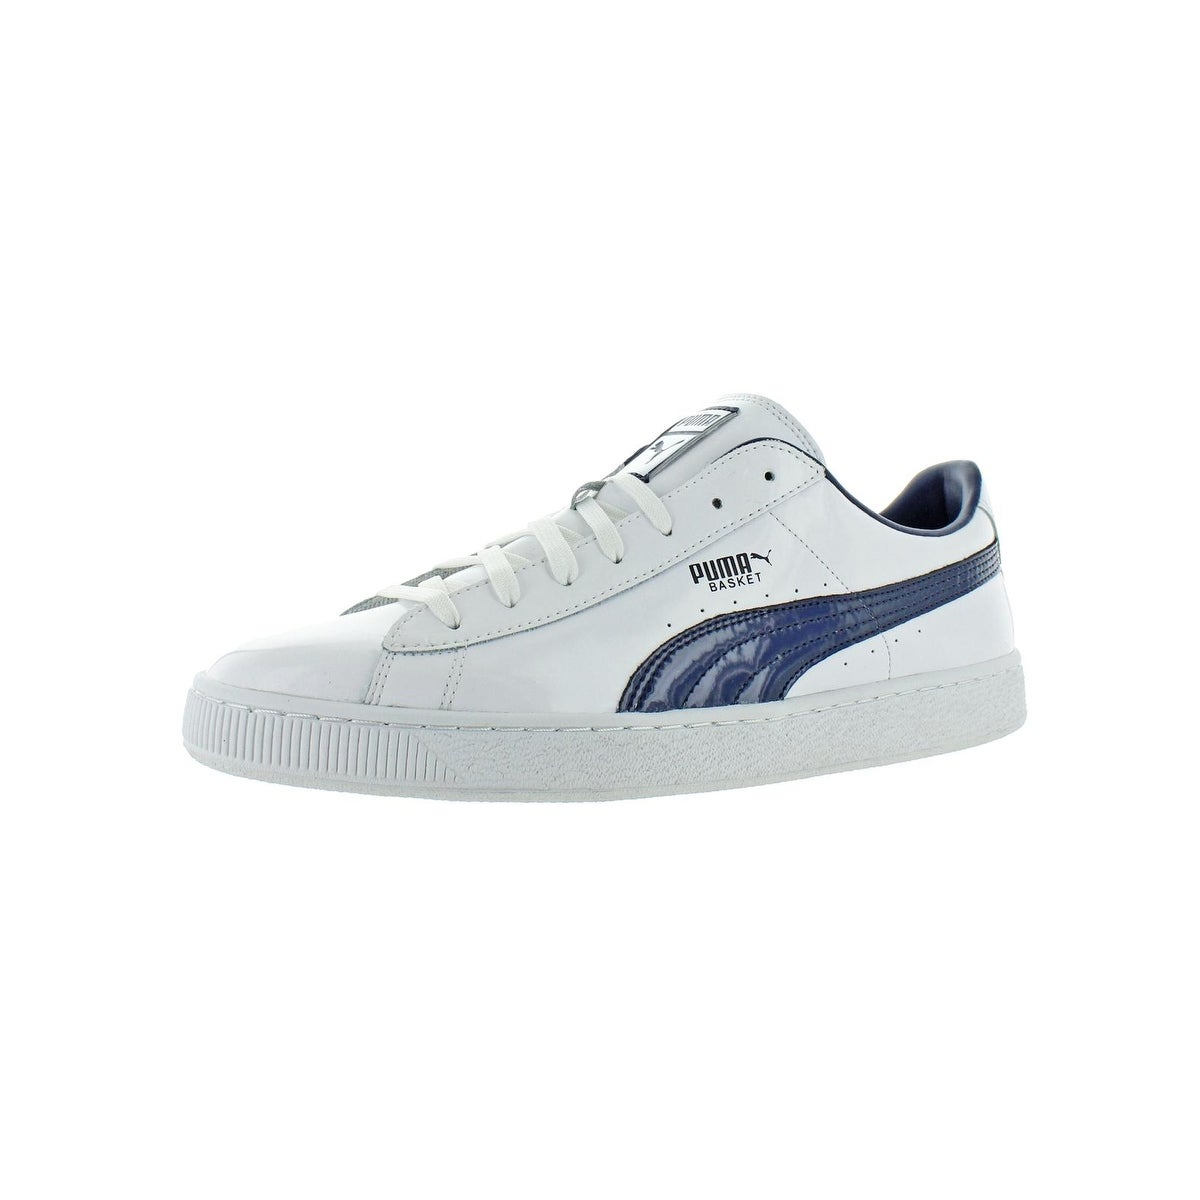 buy online f224b f5181 Puma Mens Basket Classic Casual Shoes Patent Leather Low-Top